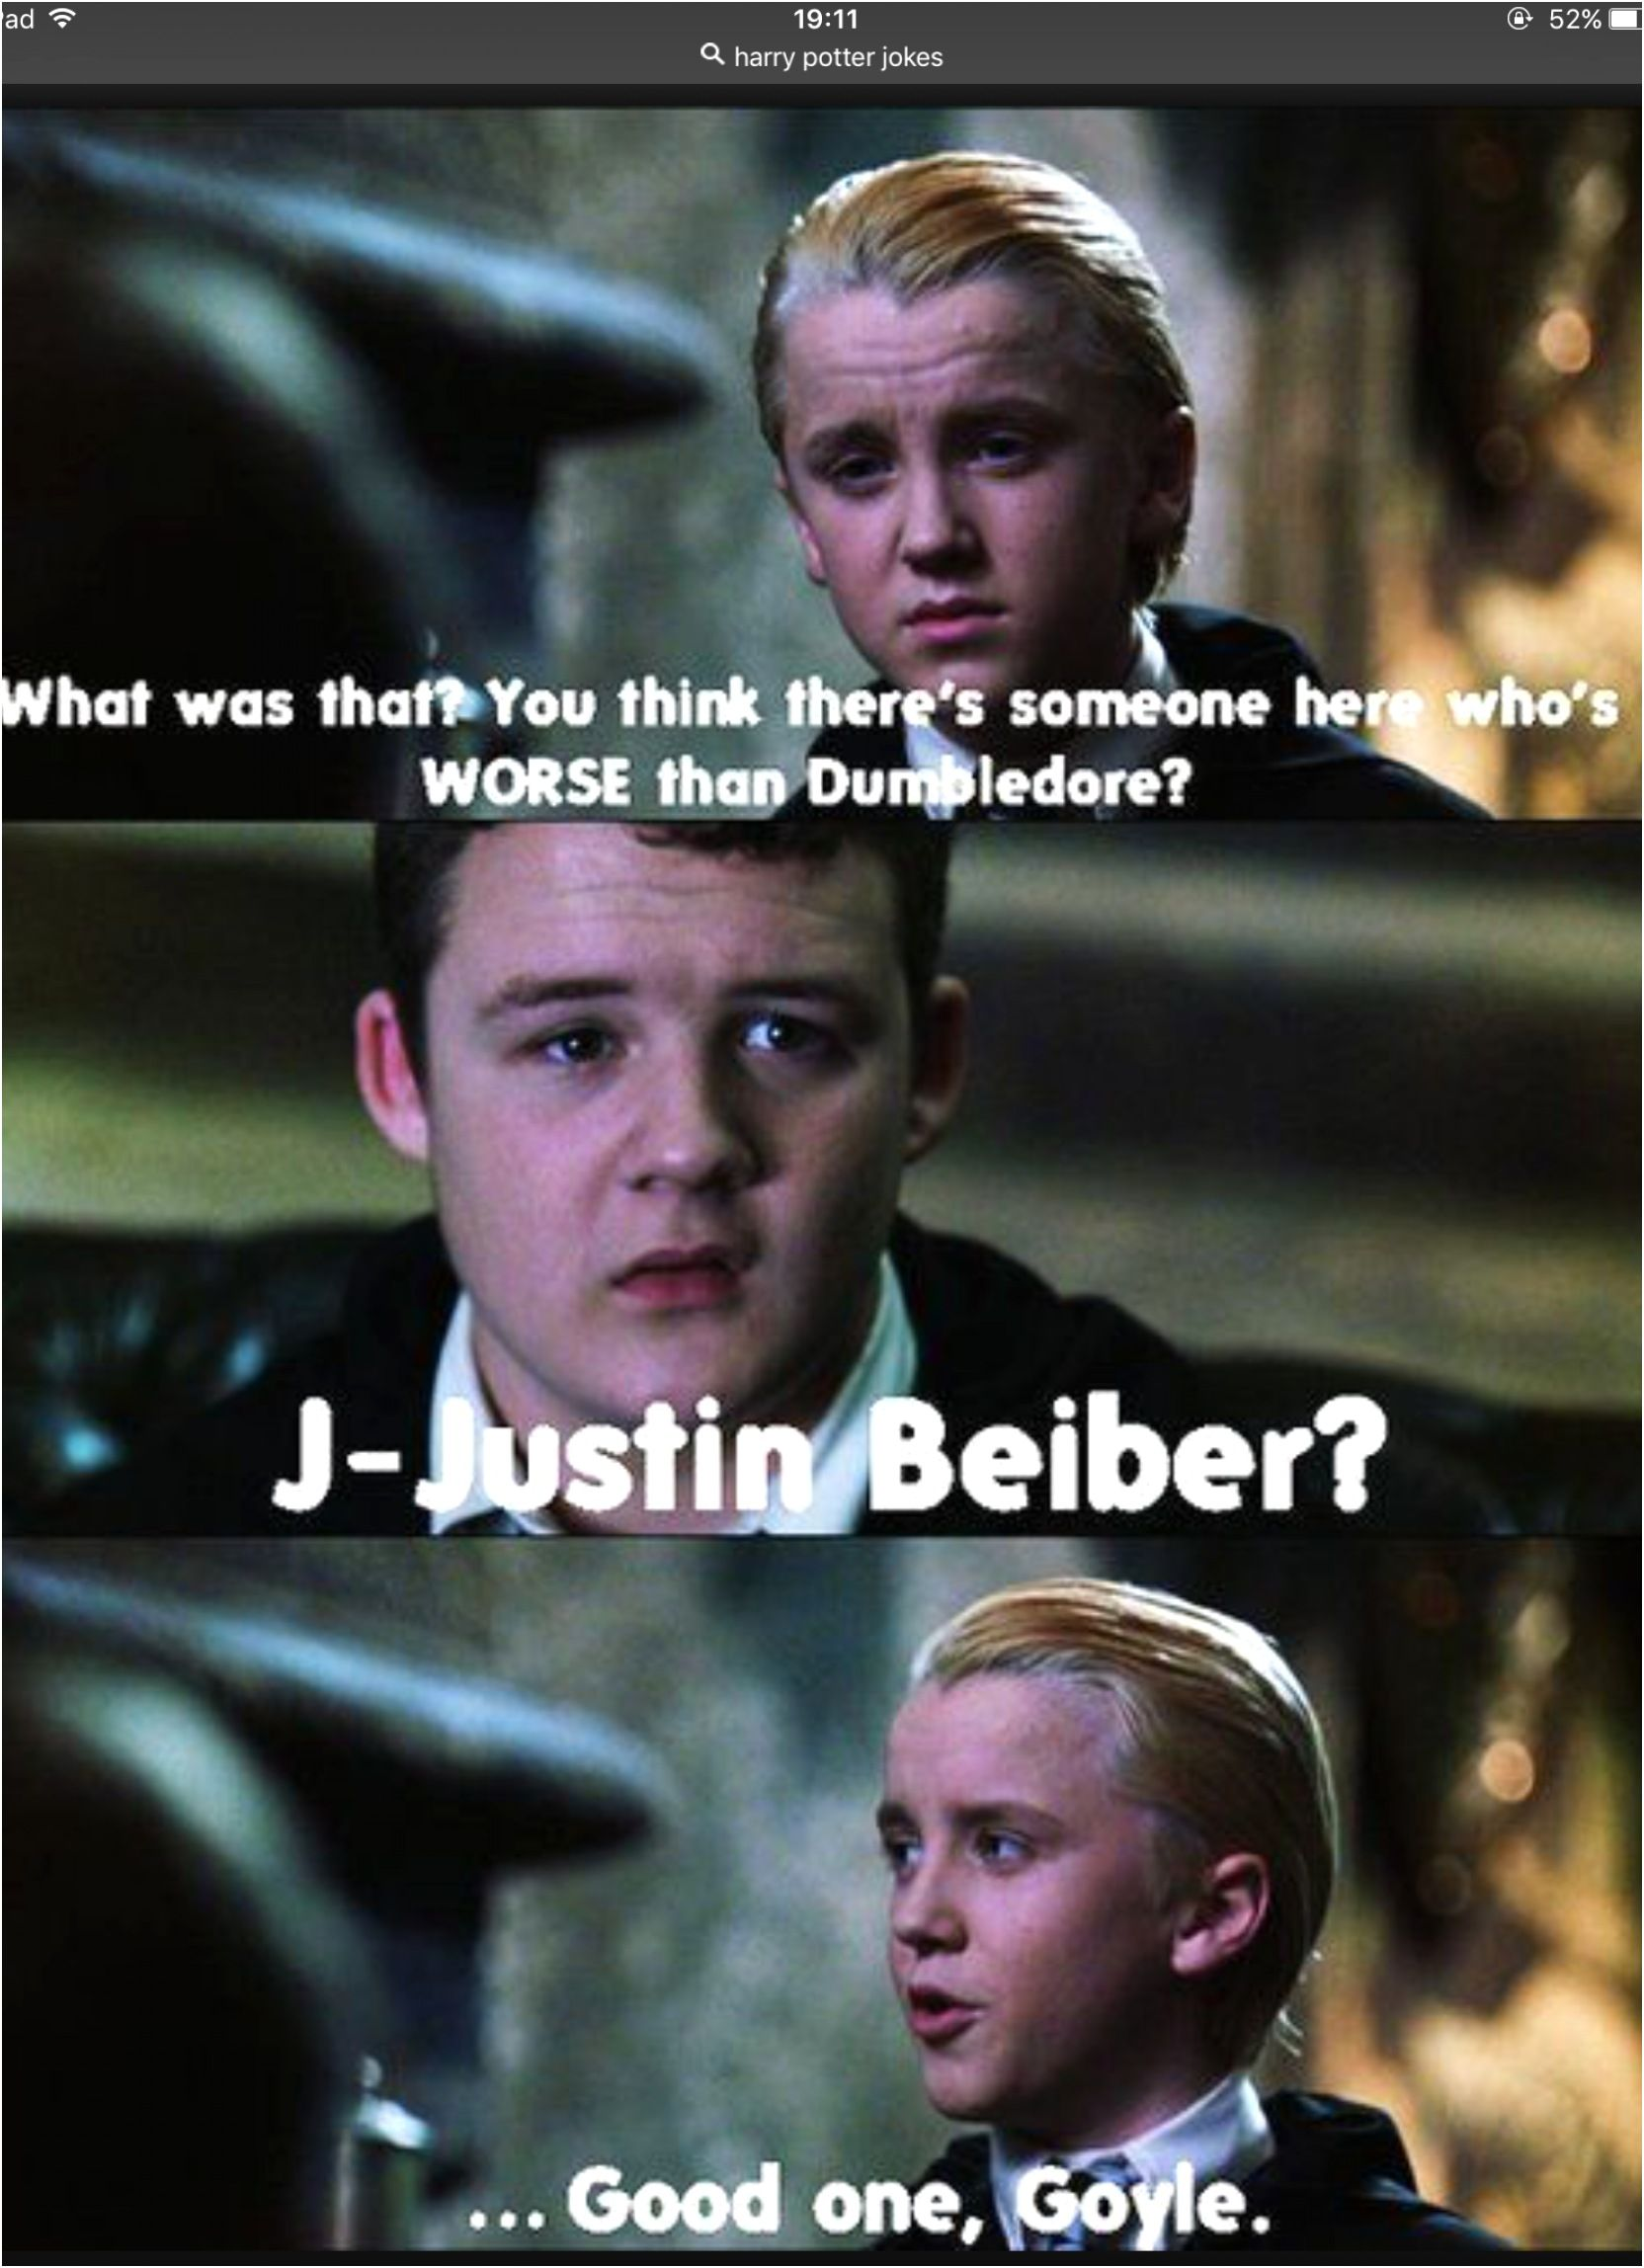 33 Hilarious Draco Malfoy Memes That Will Make You Laugh Hard In 2021 Harry Potter Quotes Funny Harry Potter Jokes Harry Potter Memes Hilarious